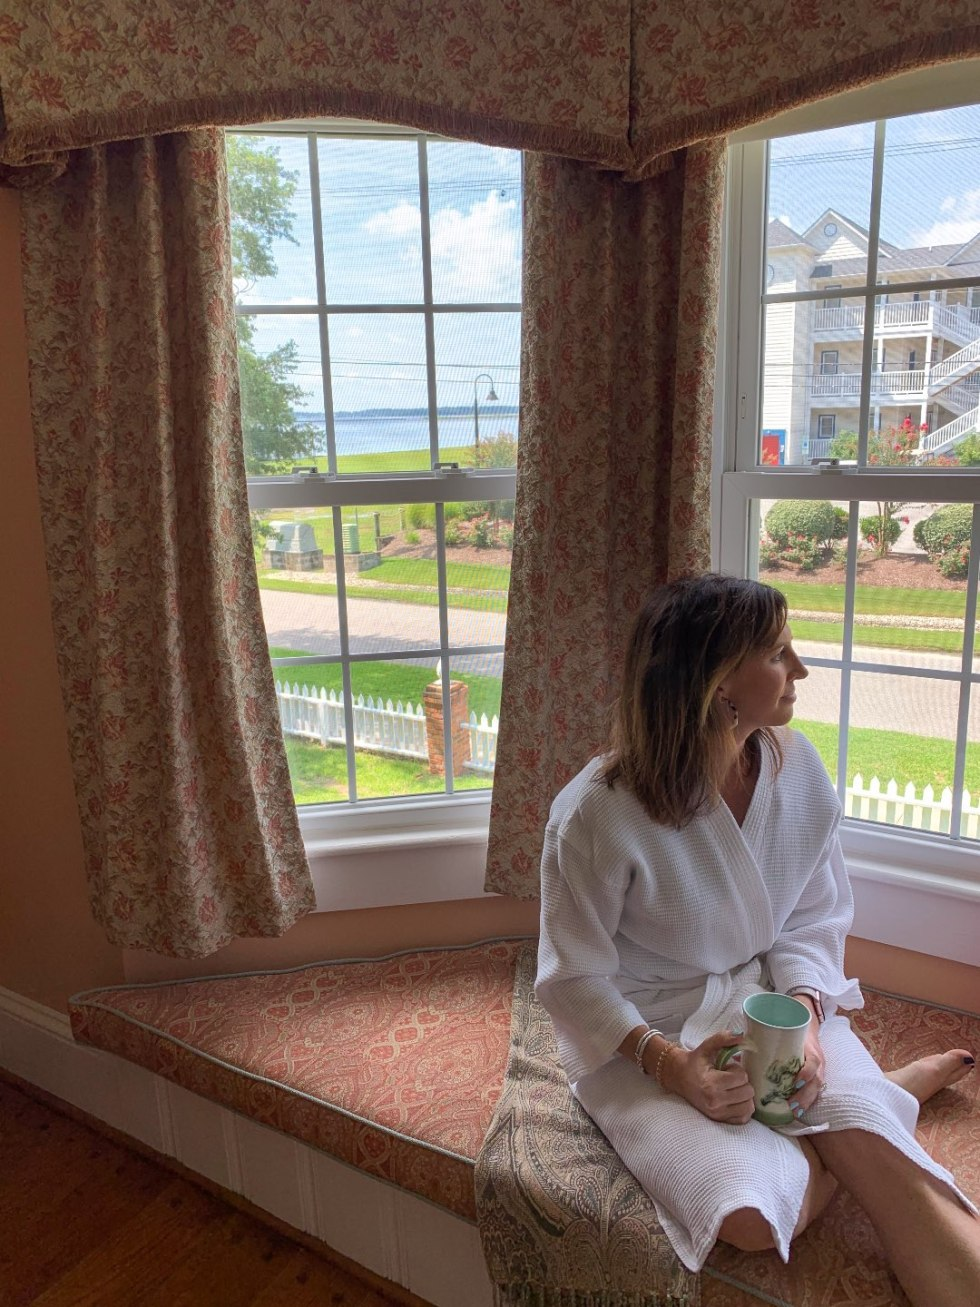 North Carolina Favorite: Between Water and Main Bed & Breakfast in Belhaven - I'm Fixin' To - @mbg0112   North Carolina Favorite: Between Water and Main Bed & Breakfast in Belhaven by popular North Carolina Blogger, I'm Fixin' To: image of a woman in a white robe sitting on a window bench and looking outside at Between Water and Main Bed and Breakfast.